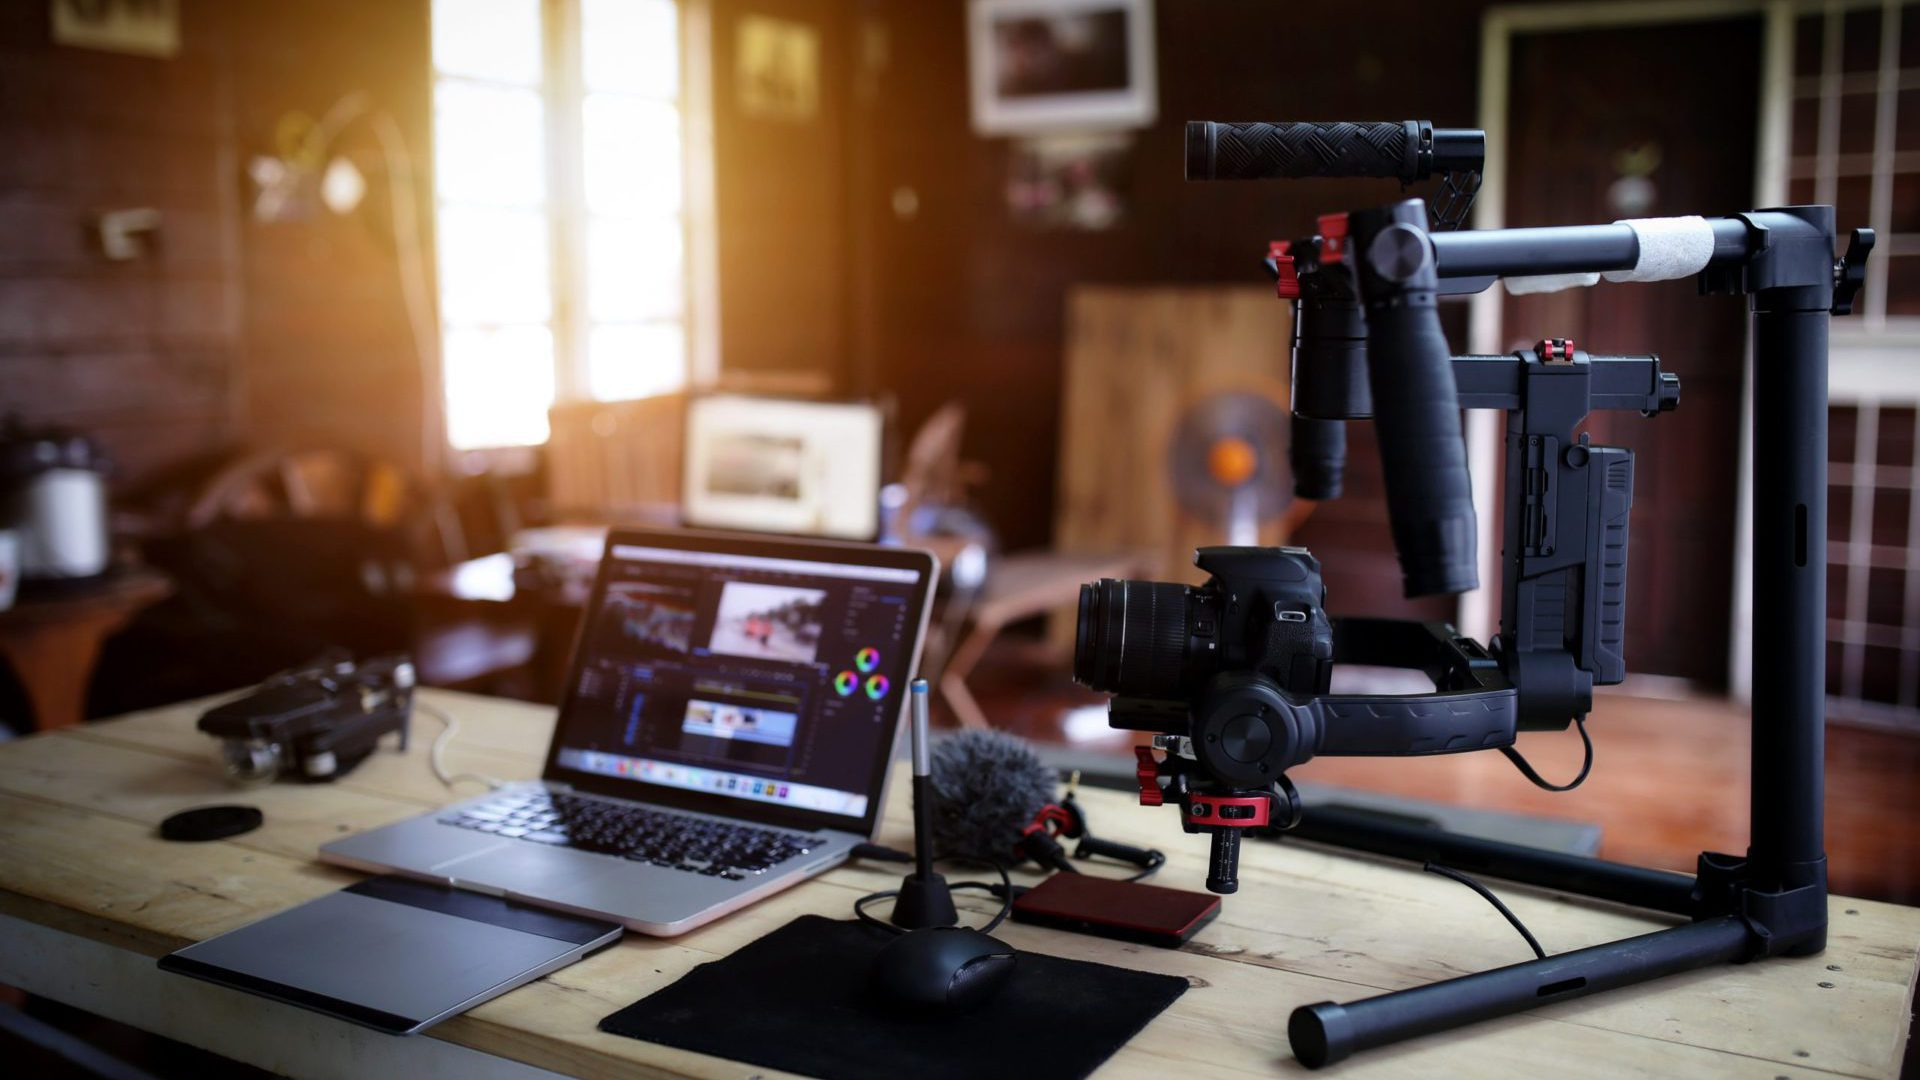 YouTuber setup with DSLR, gimbal, editing laptop and desk - How to start a YouTube channel for beginners